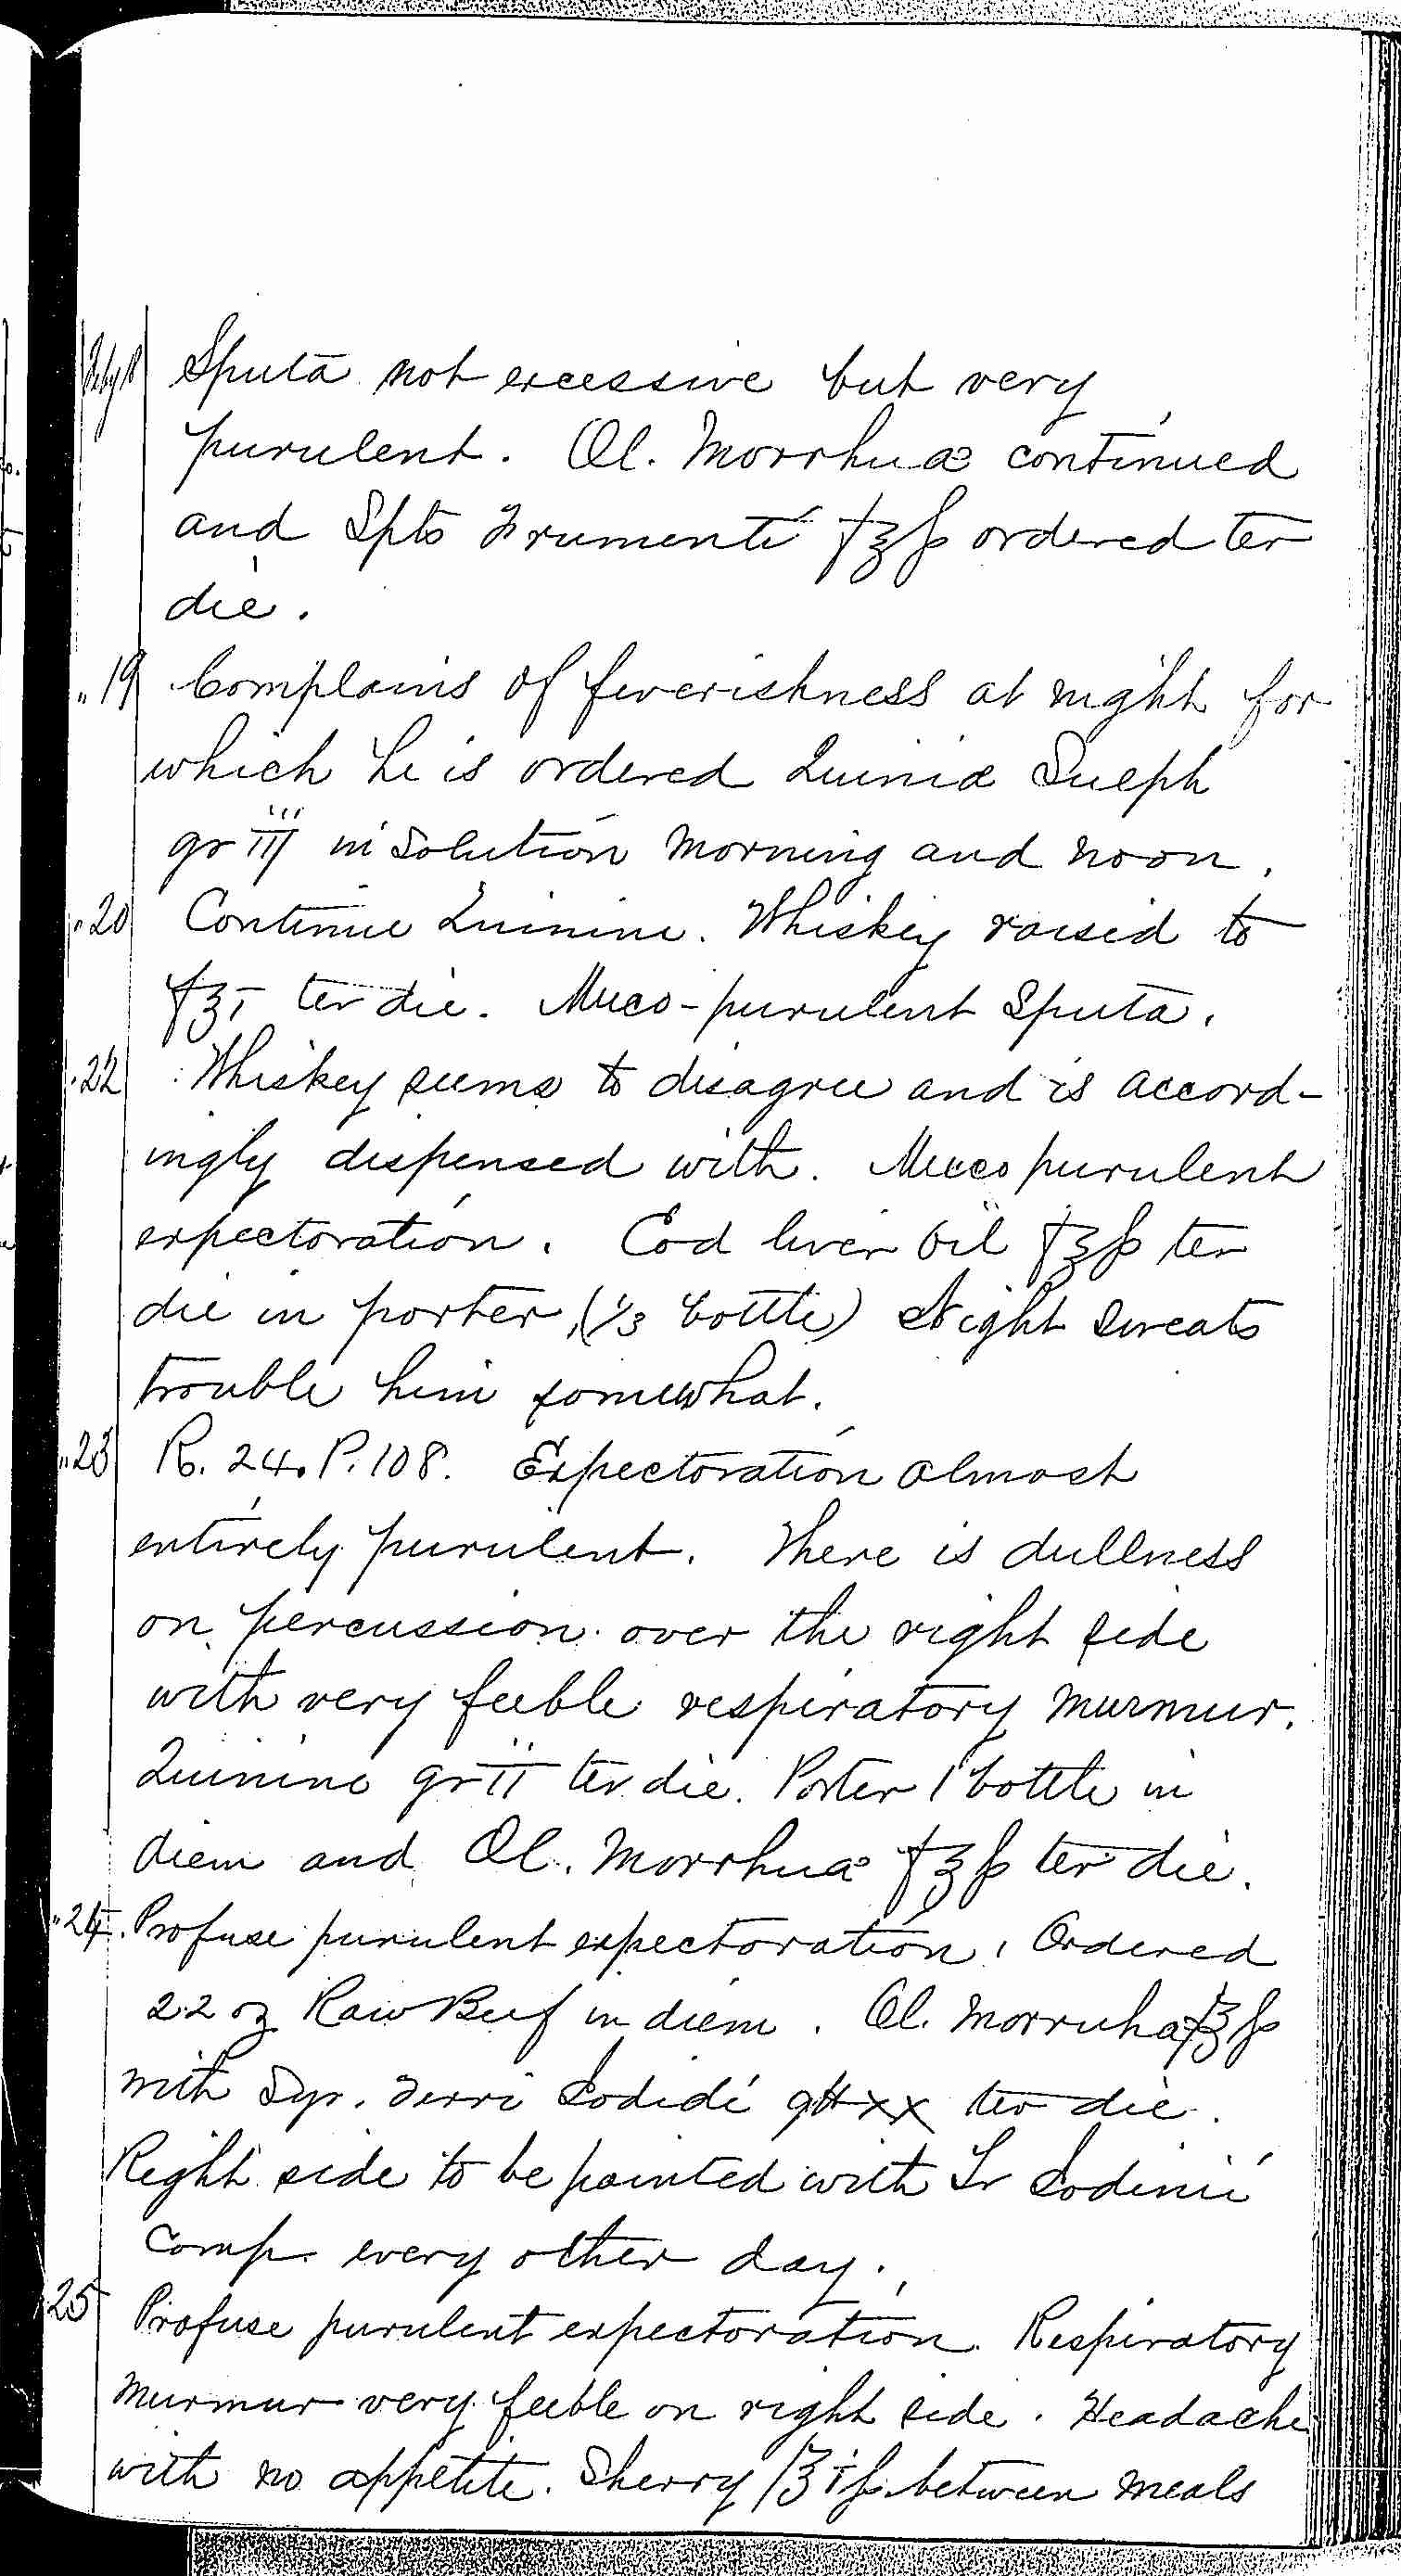 Entry for Peter C. Cheeks (page 7 of 16) in the log Hospital Tickets and Case Papers - Naval Hospital - Washington, D.C. - 1868-69